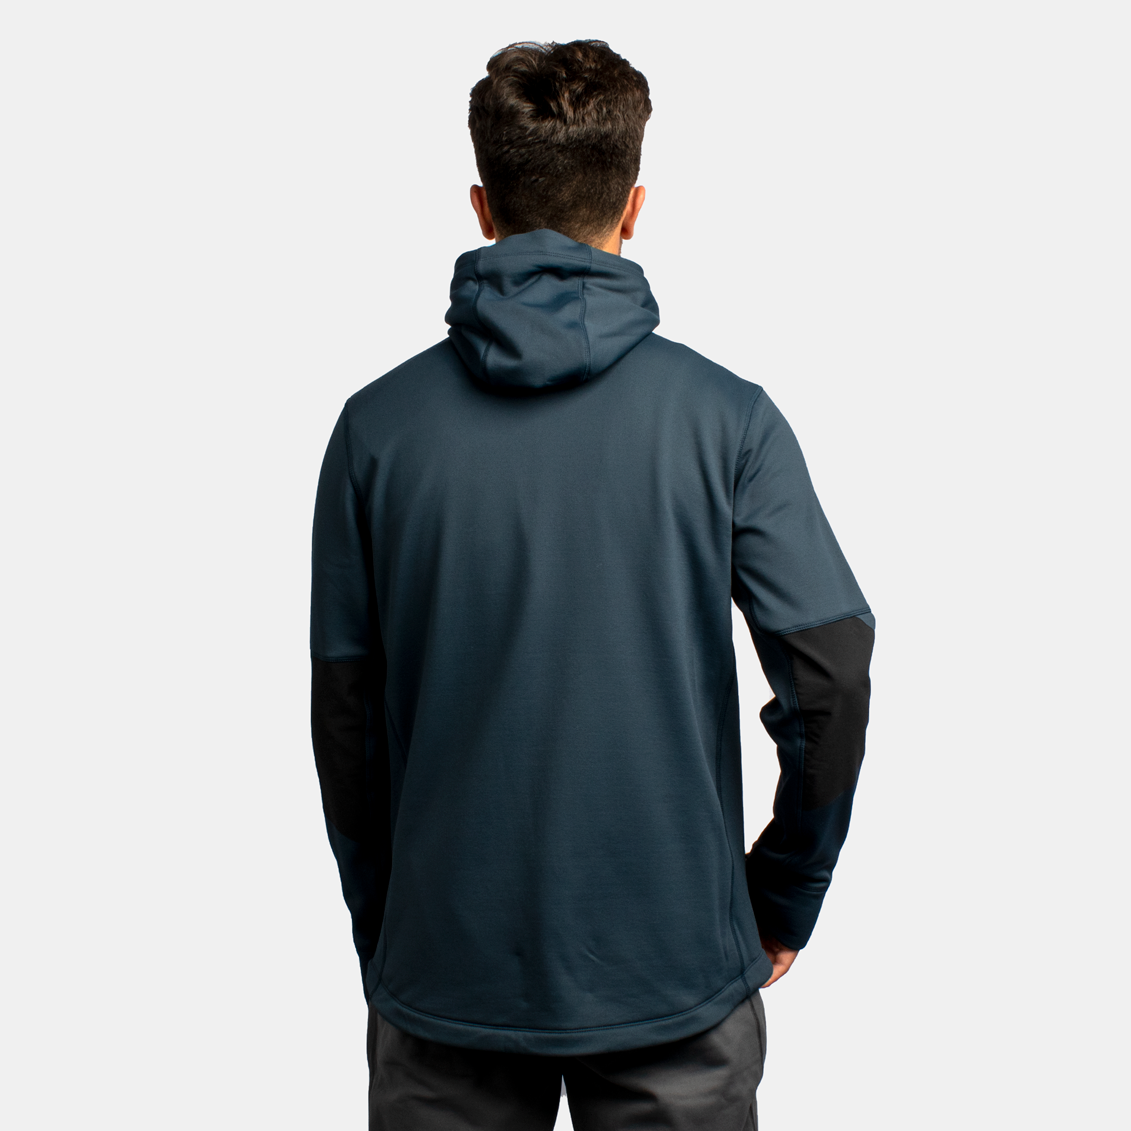 Men's Performance Hoodie - Navy